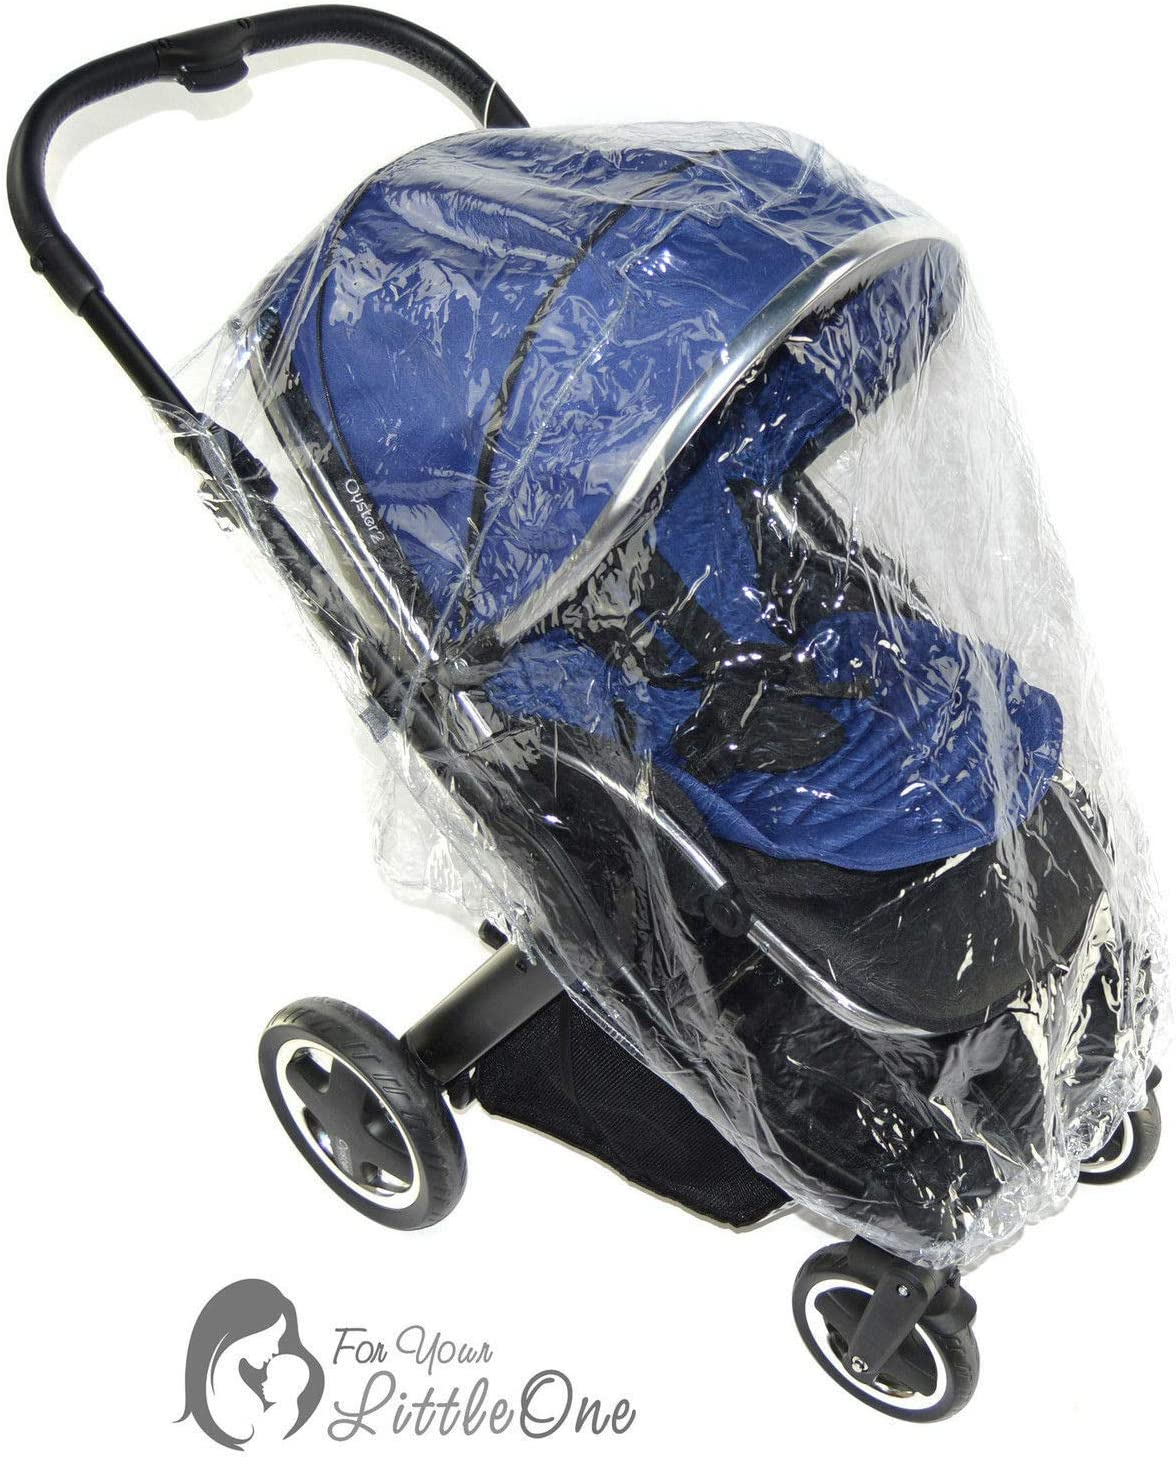 142 Raincover Compatible with ICandy Peach Pushchair